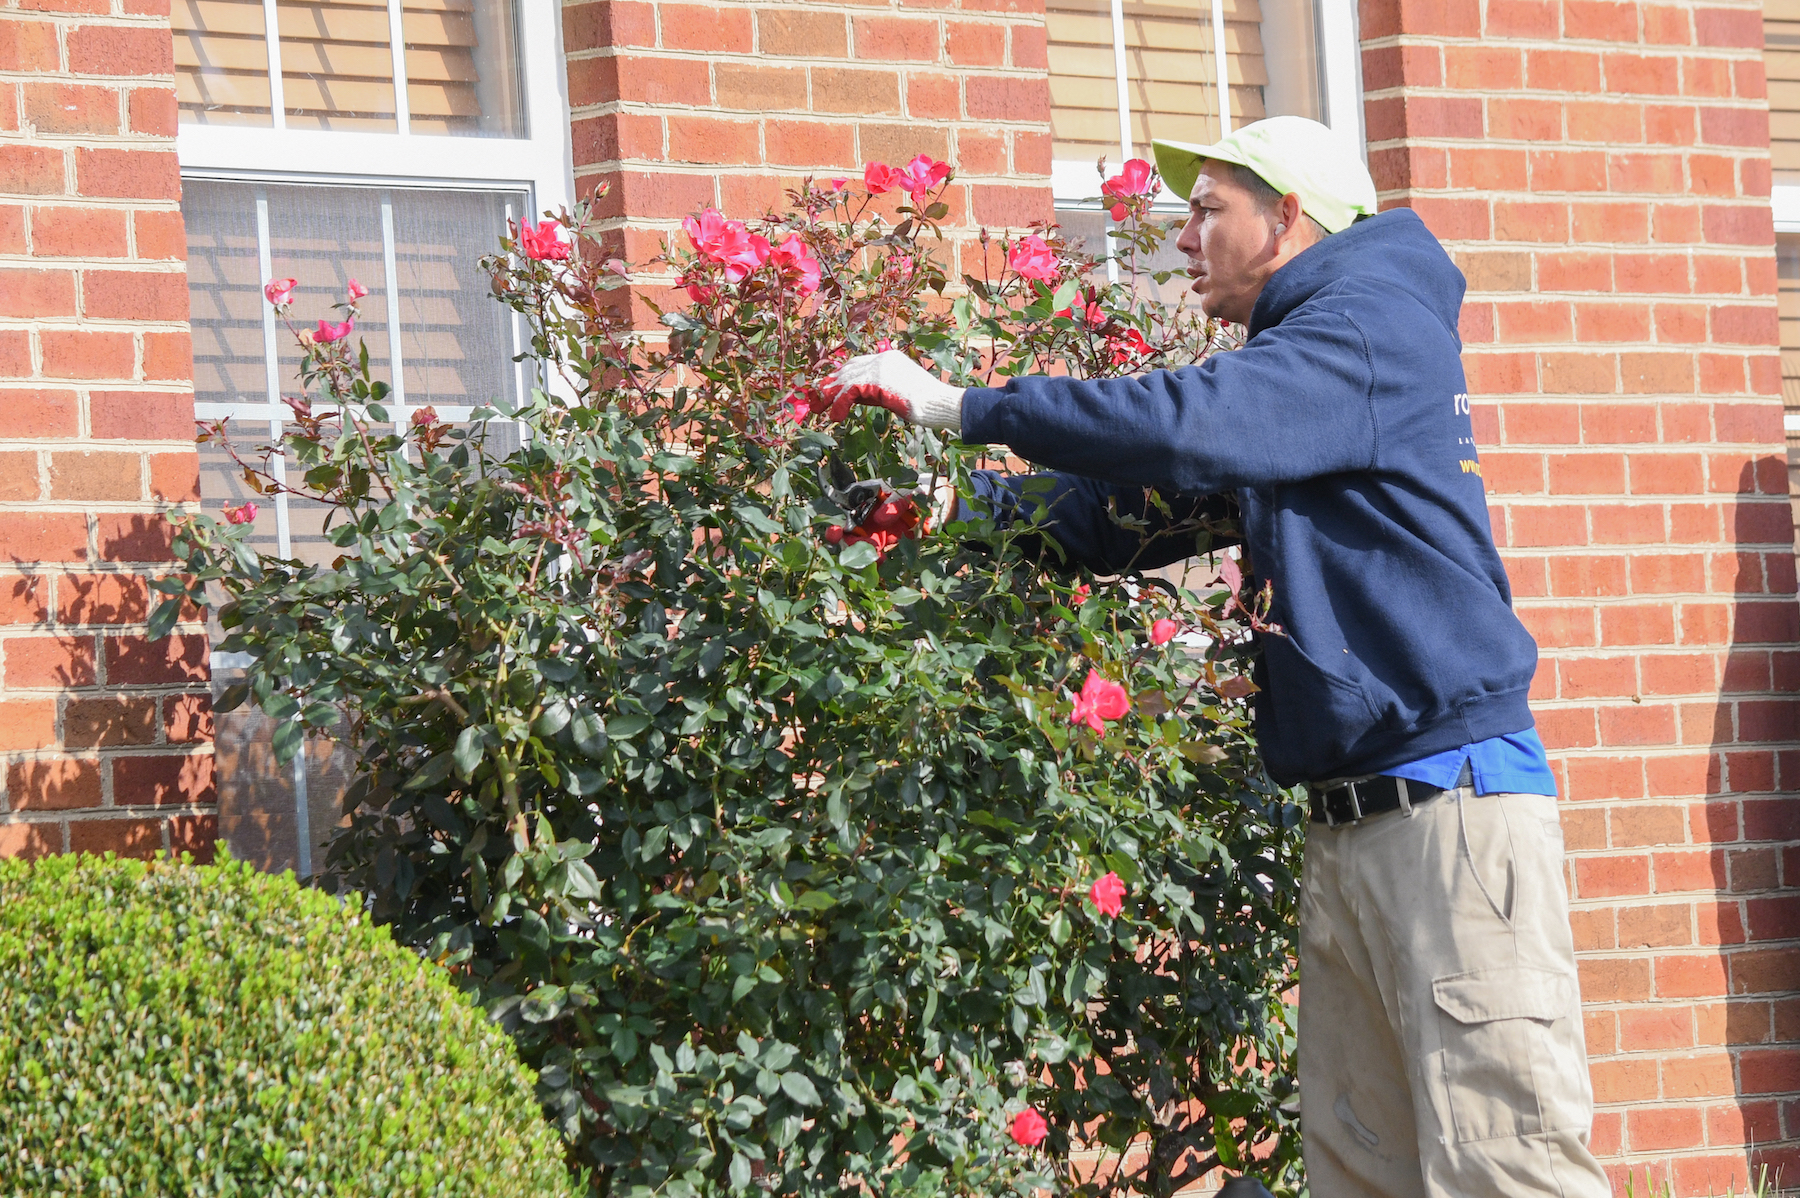 Pruning Tips For Your Small Ornamental Trees in Haymarket, Gainesville, and Warrenton, VA